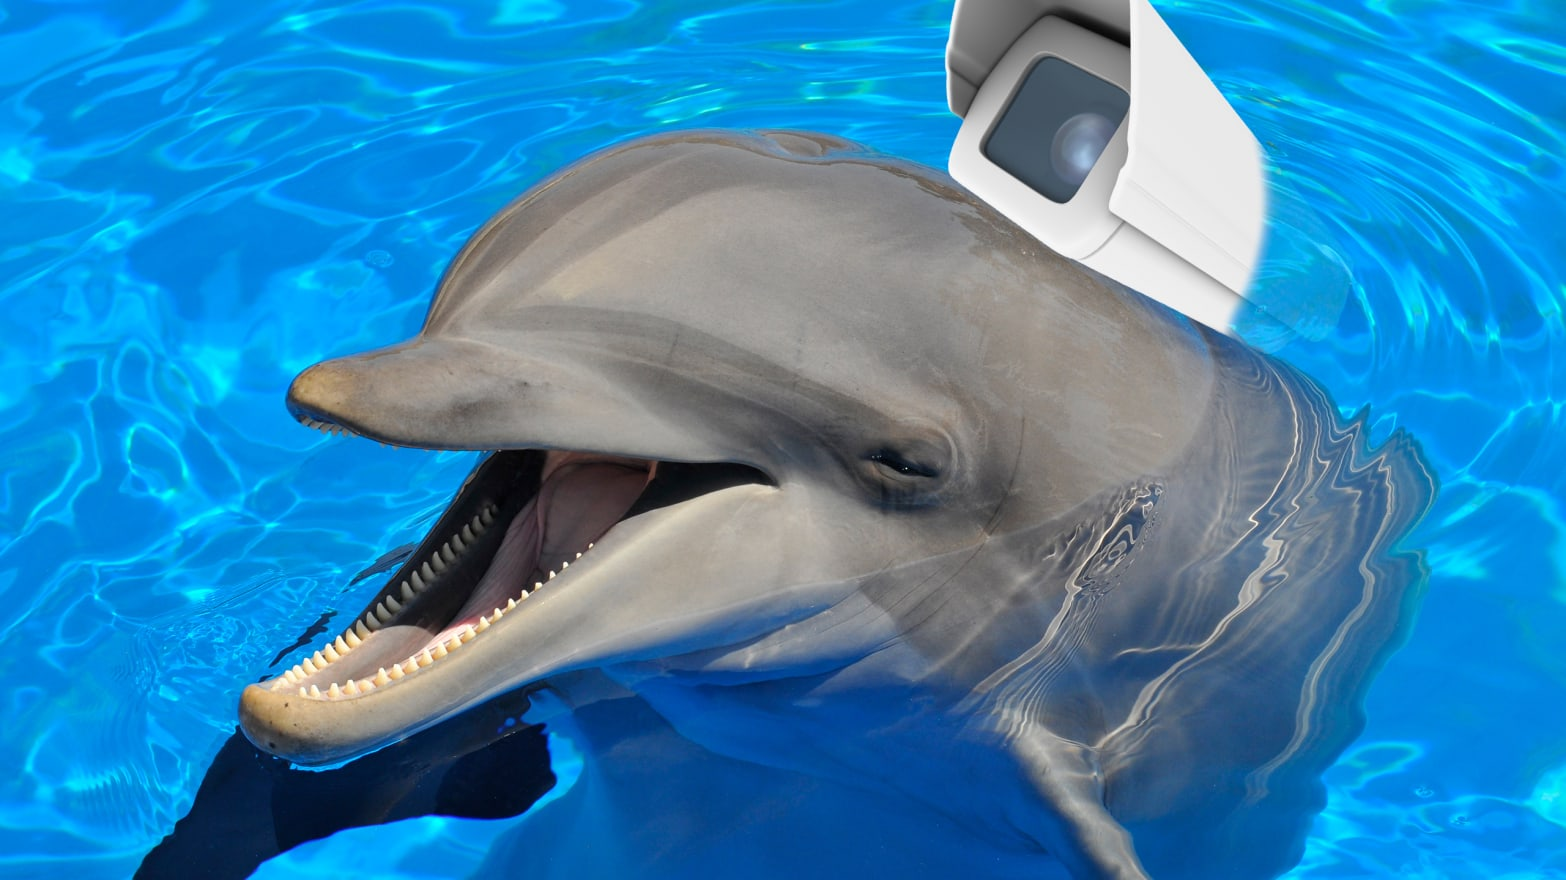 Hamas Arrests 'Israeli Spy' Dolphin